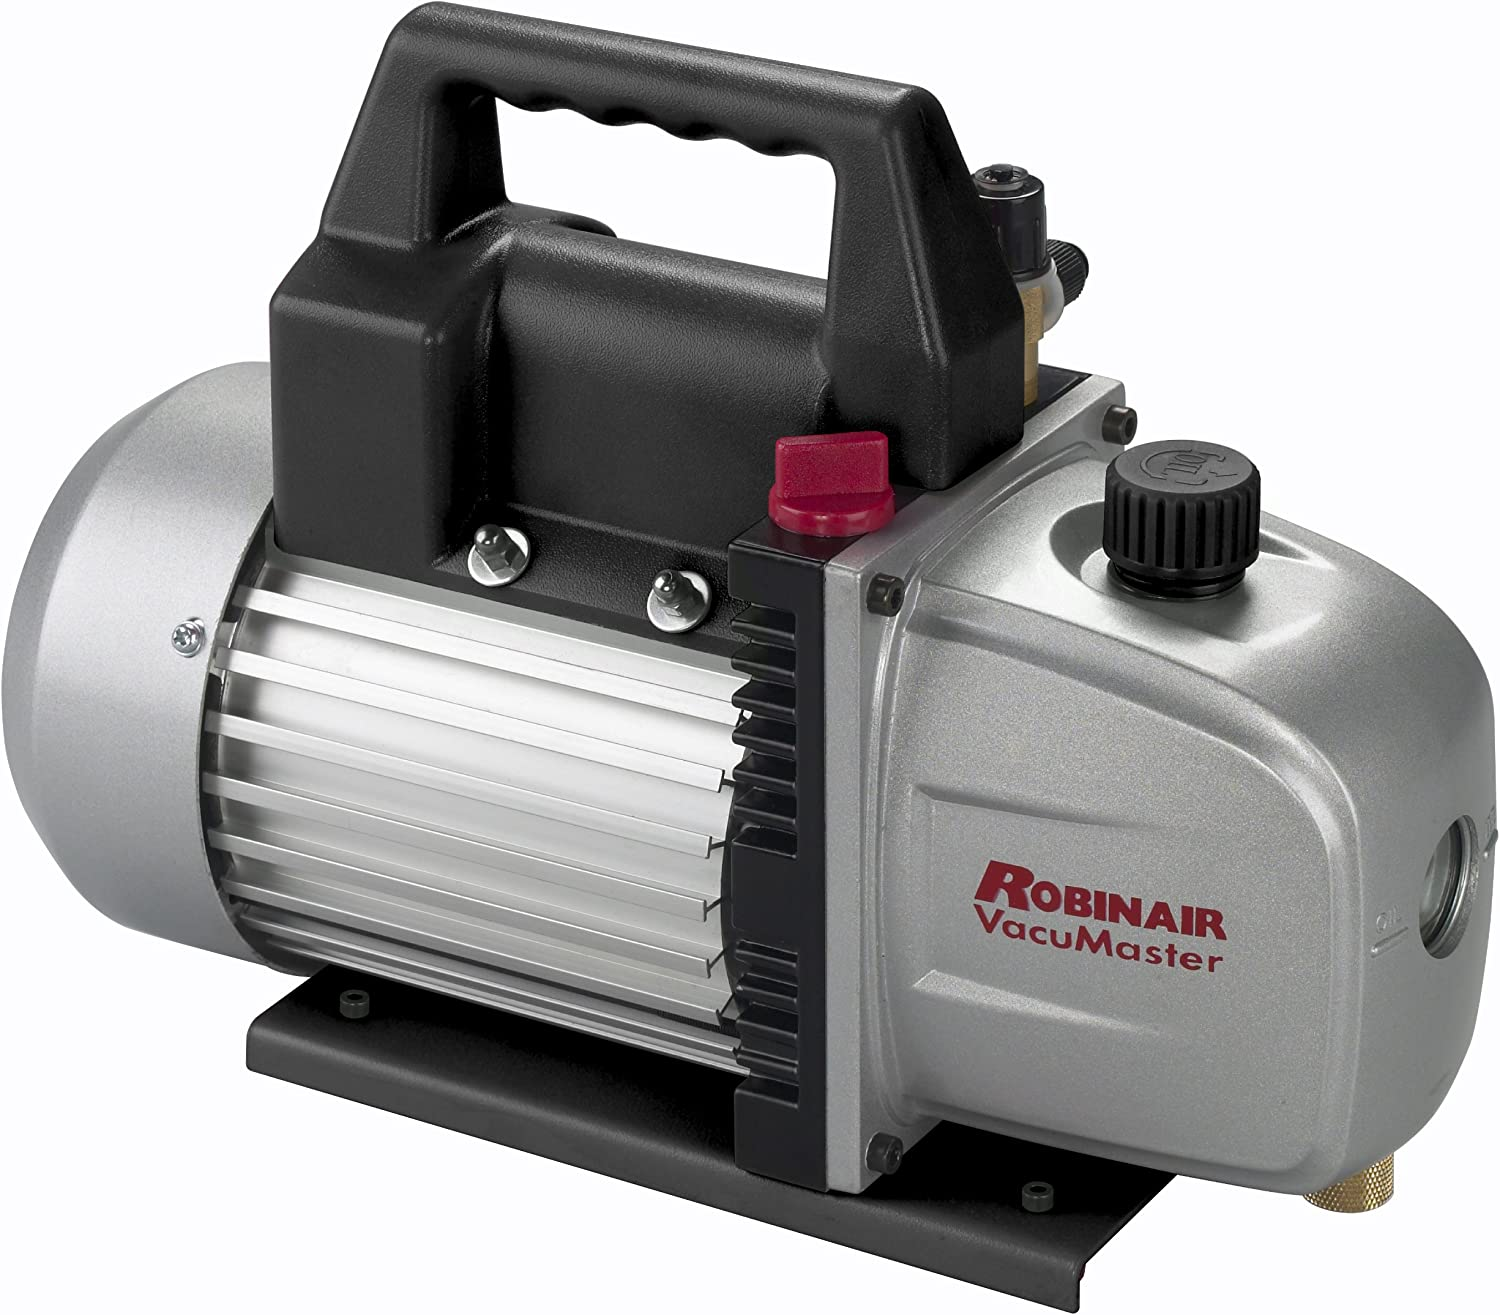 Robinair (15510) VacuMaster Single Stage Vacuum Pump - Single-Stage, 5 CFM